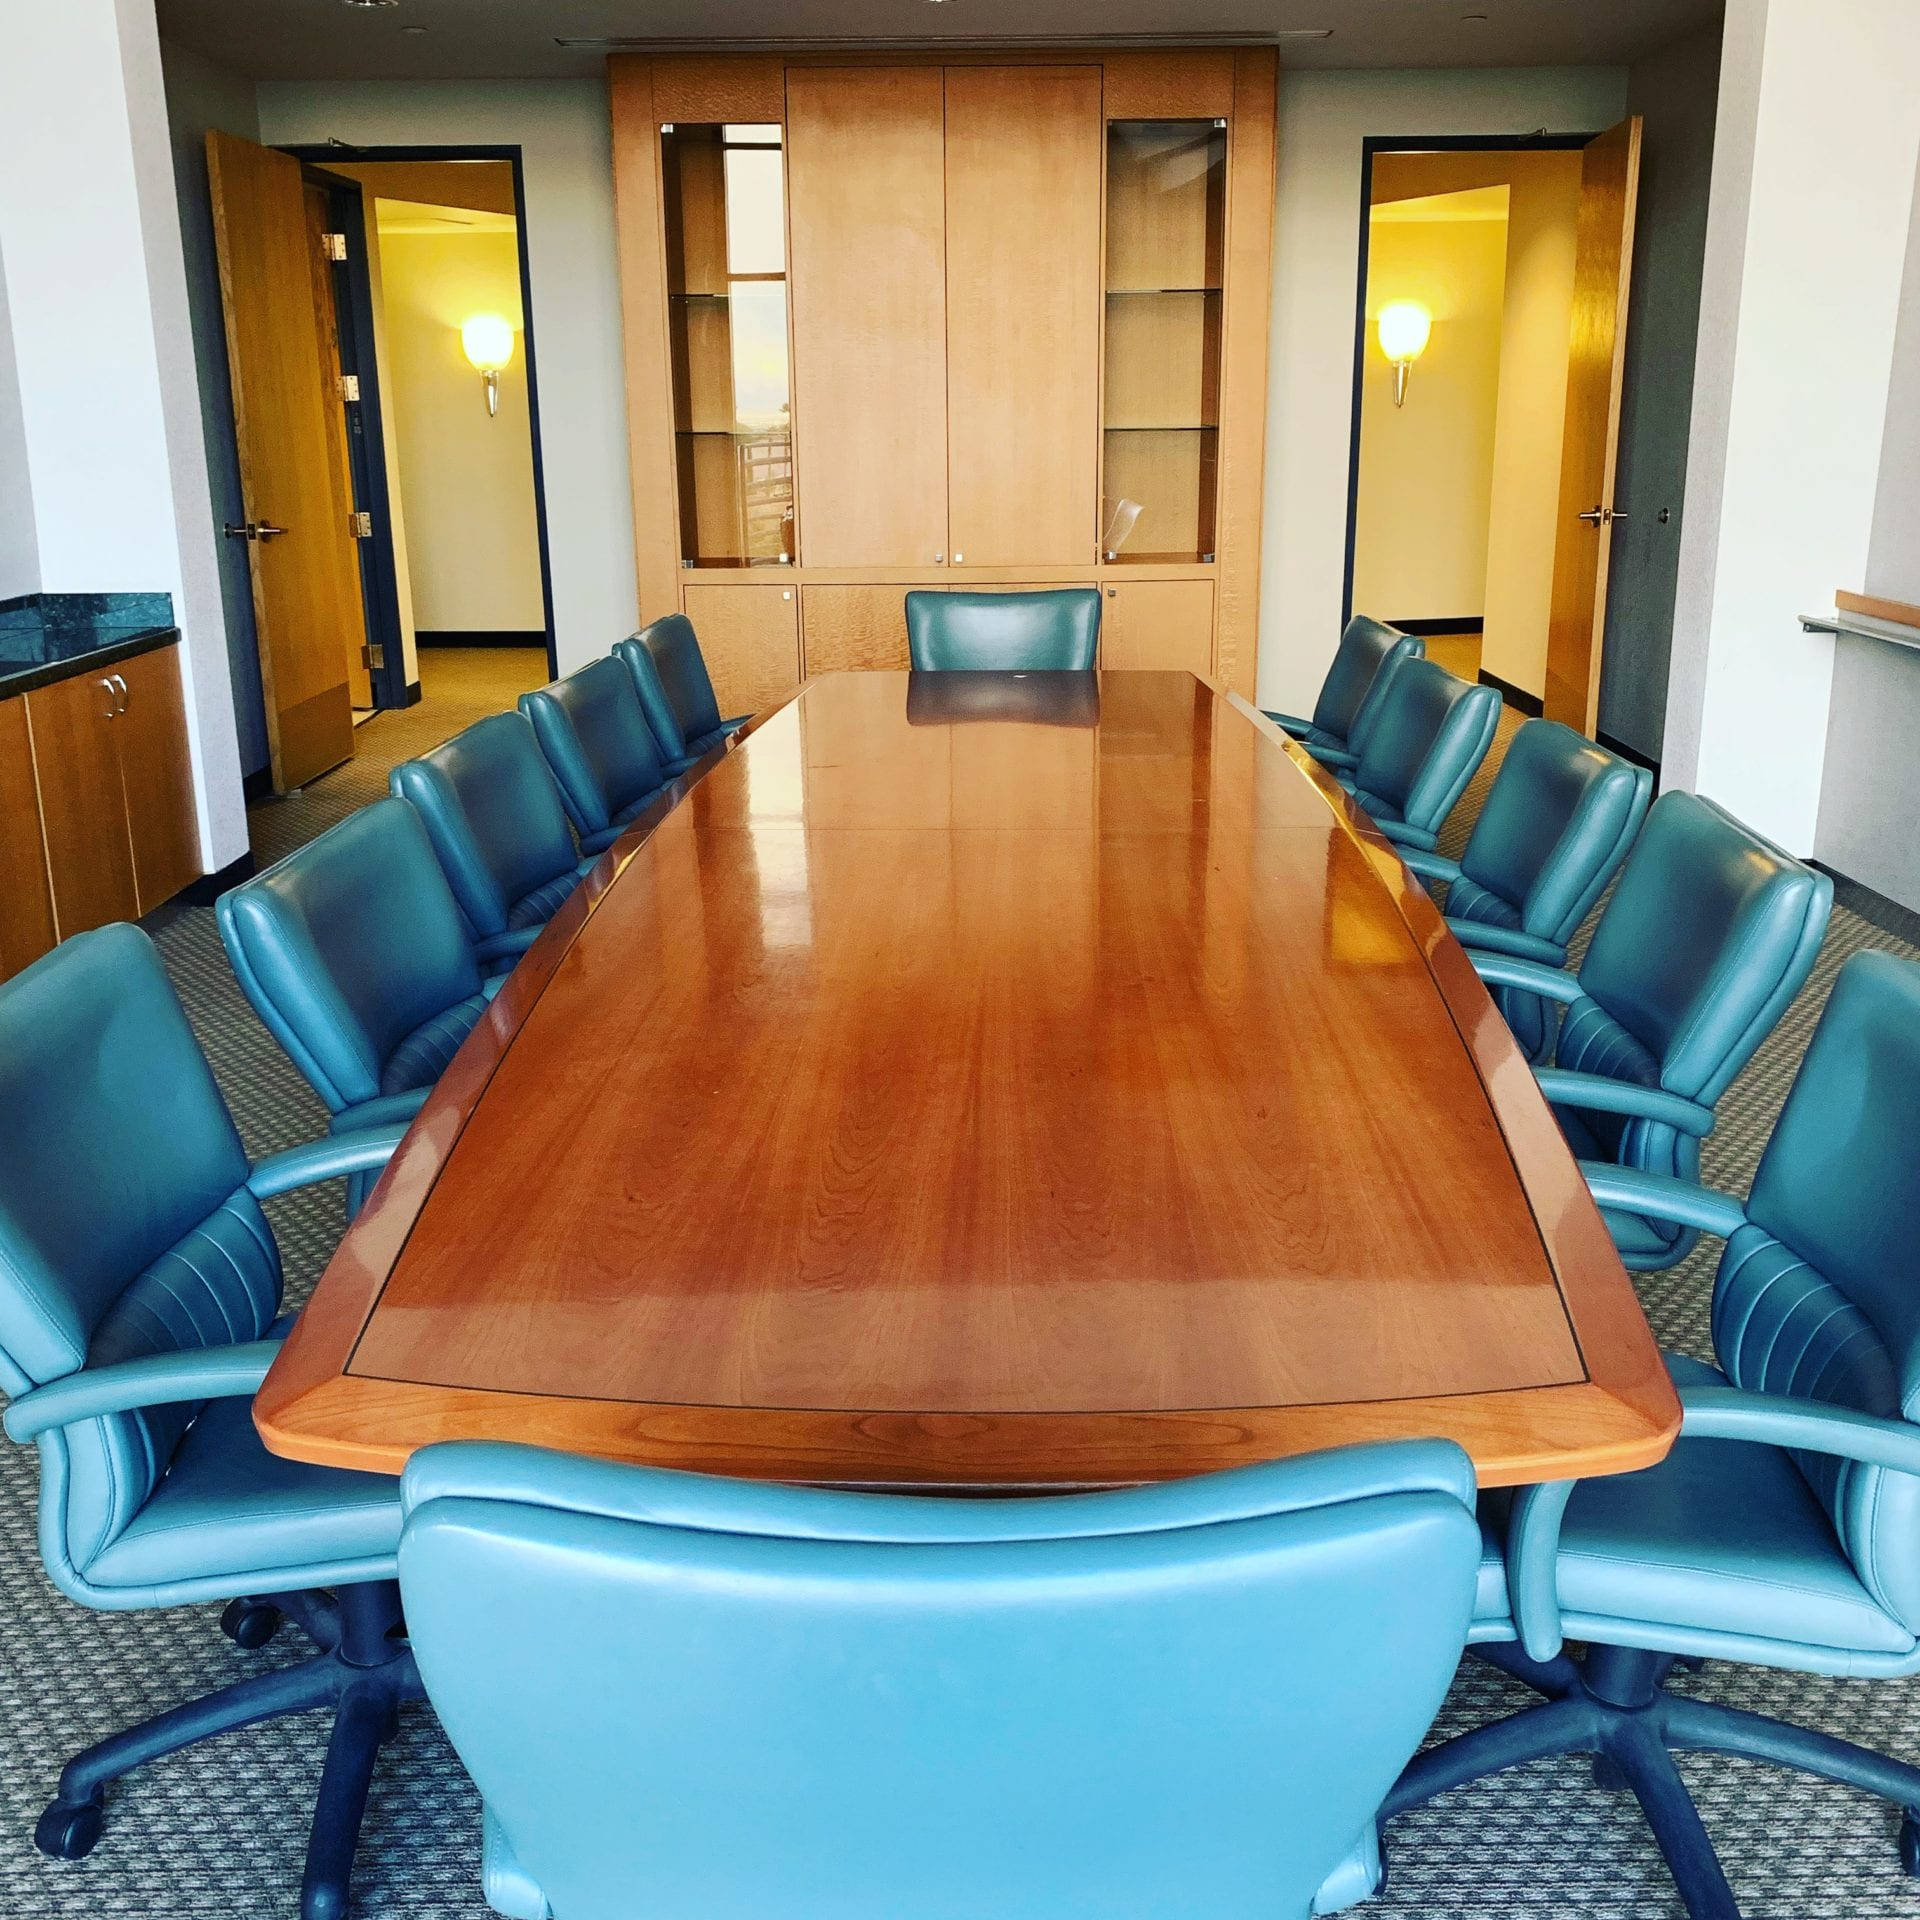 Executive Table at Privé Offices